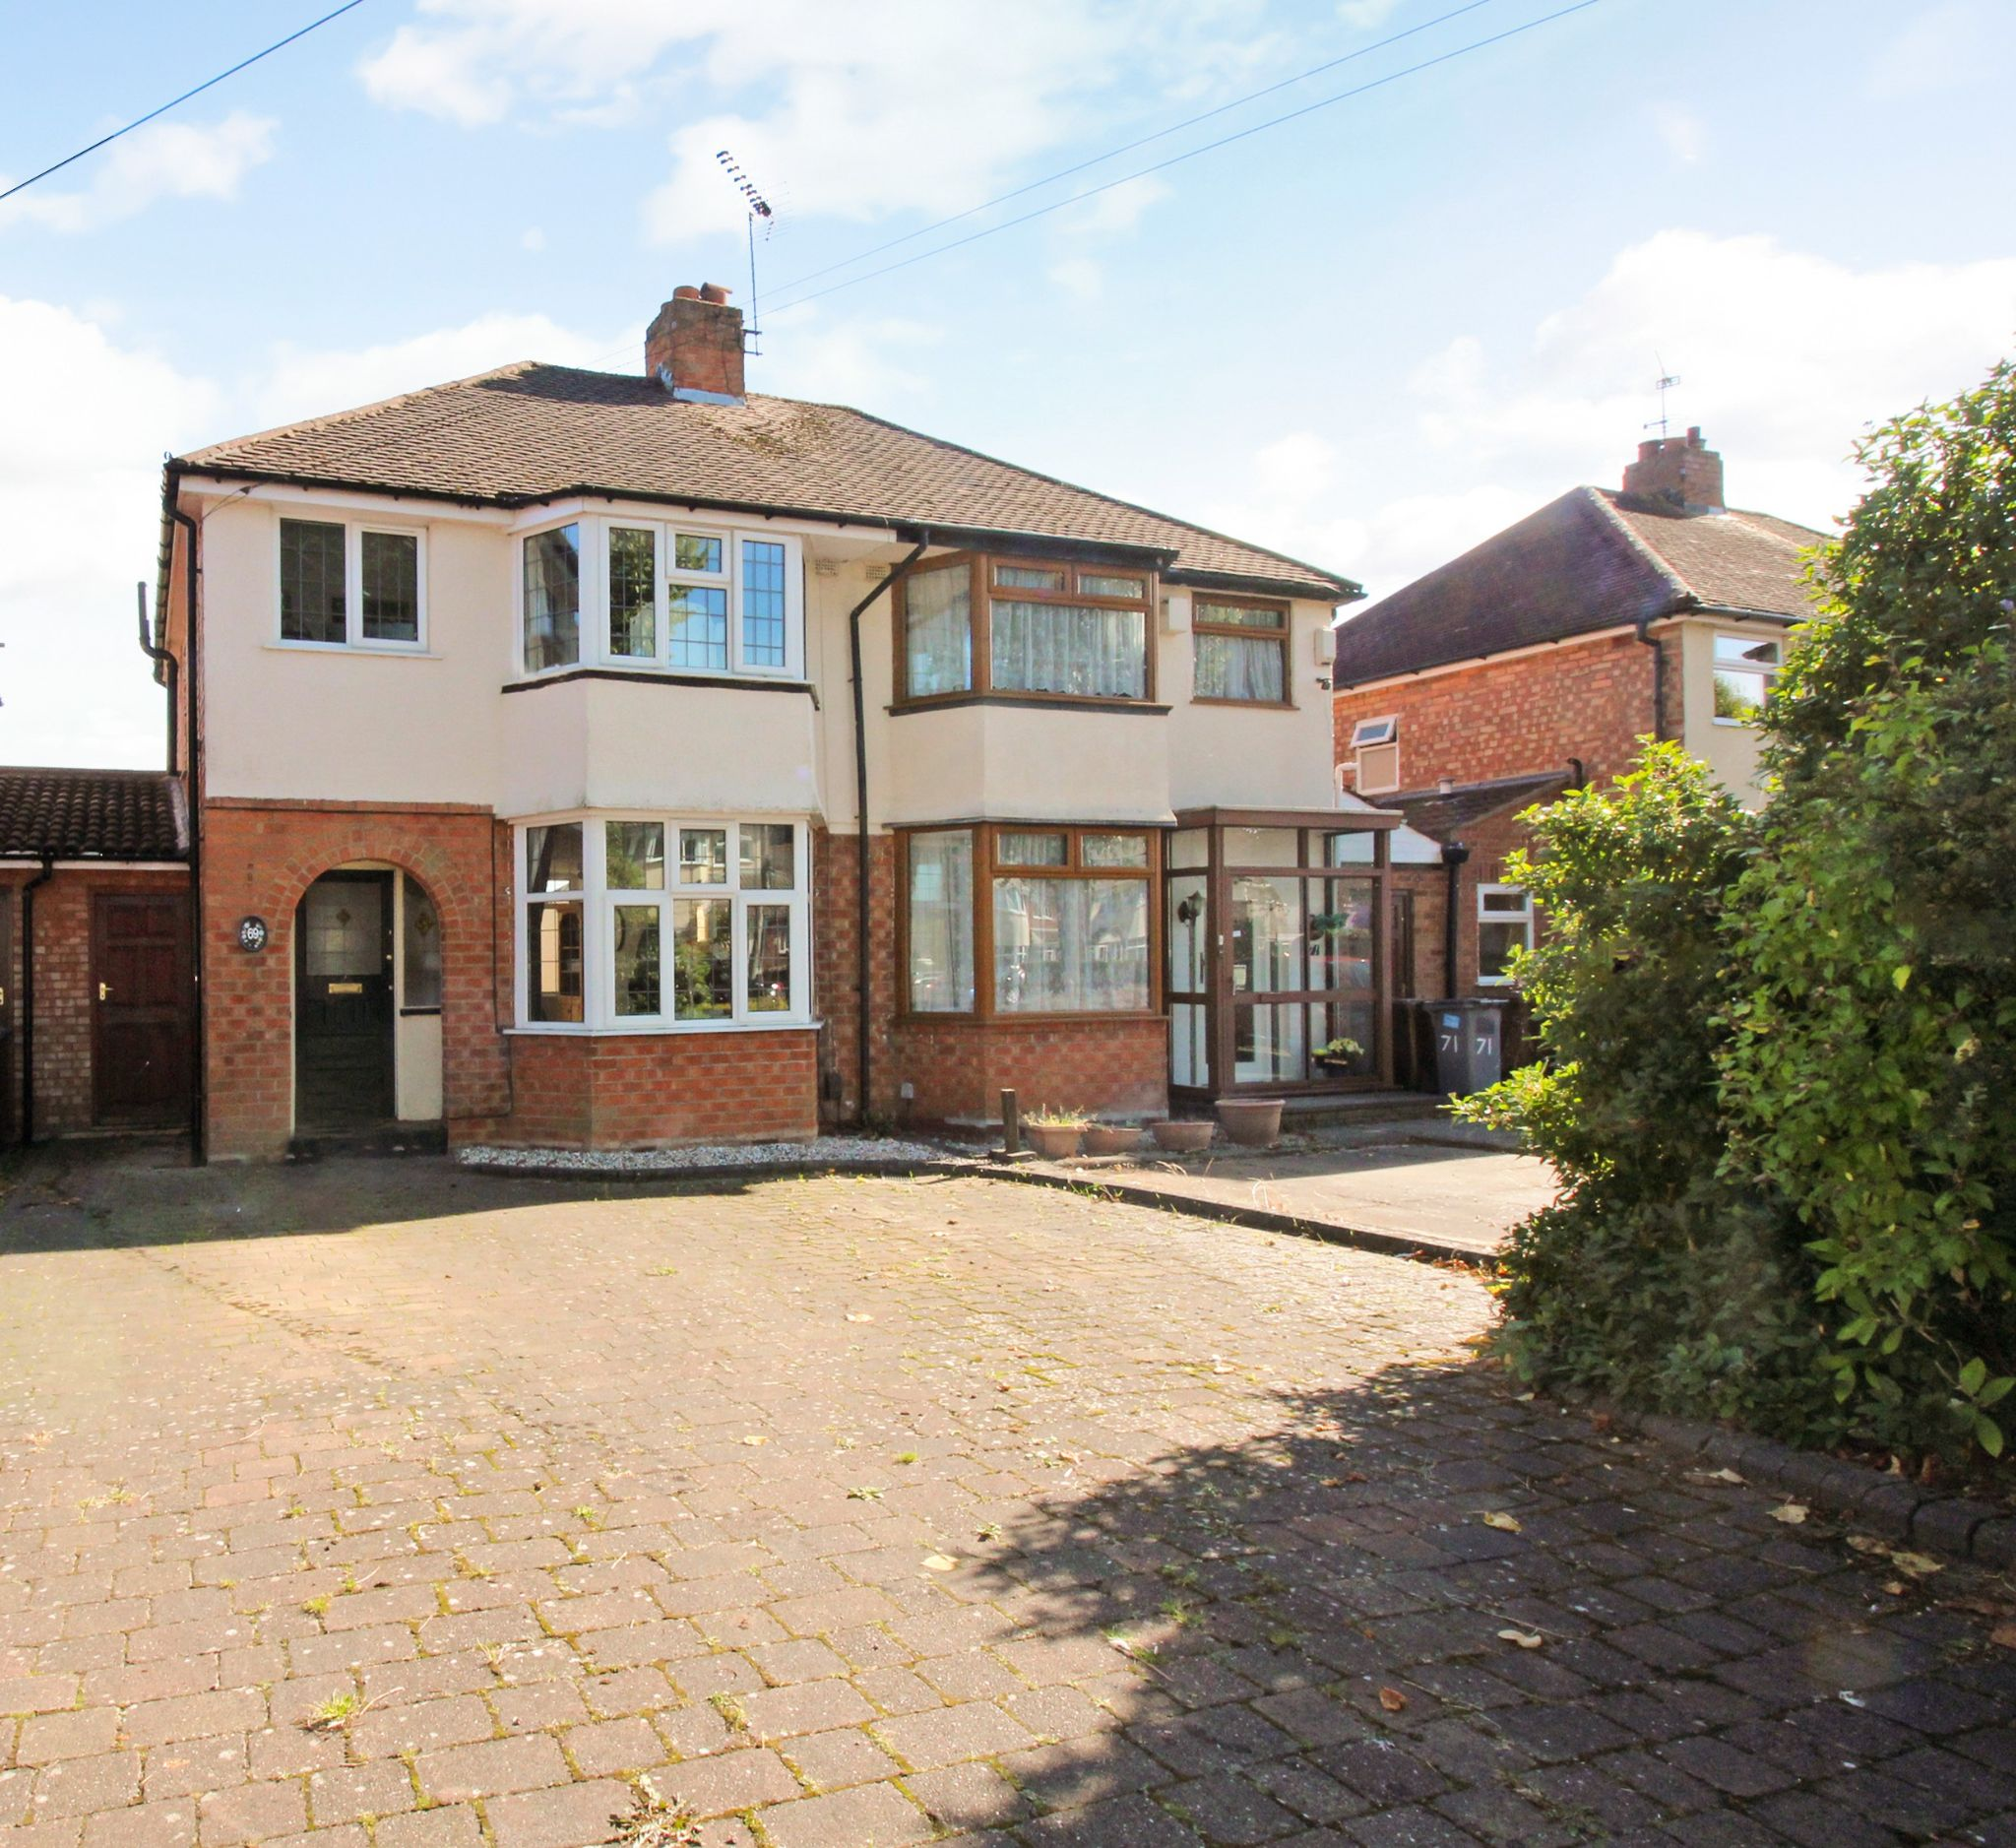 3 bedroom semi-detached house For Sale in Solihull - Photograph 12.